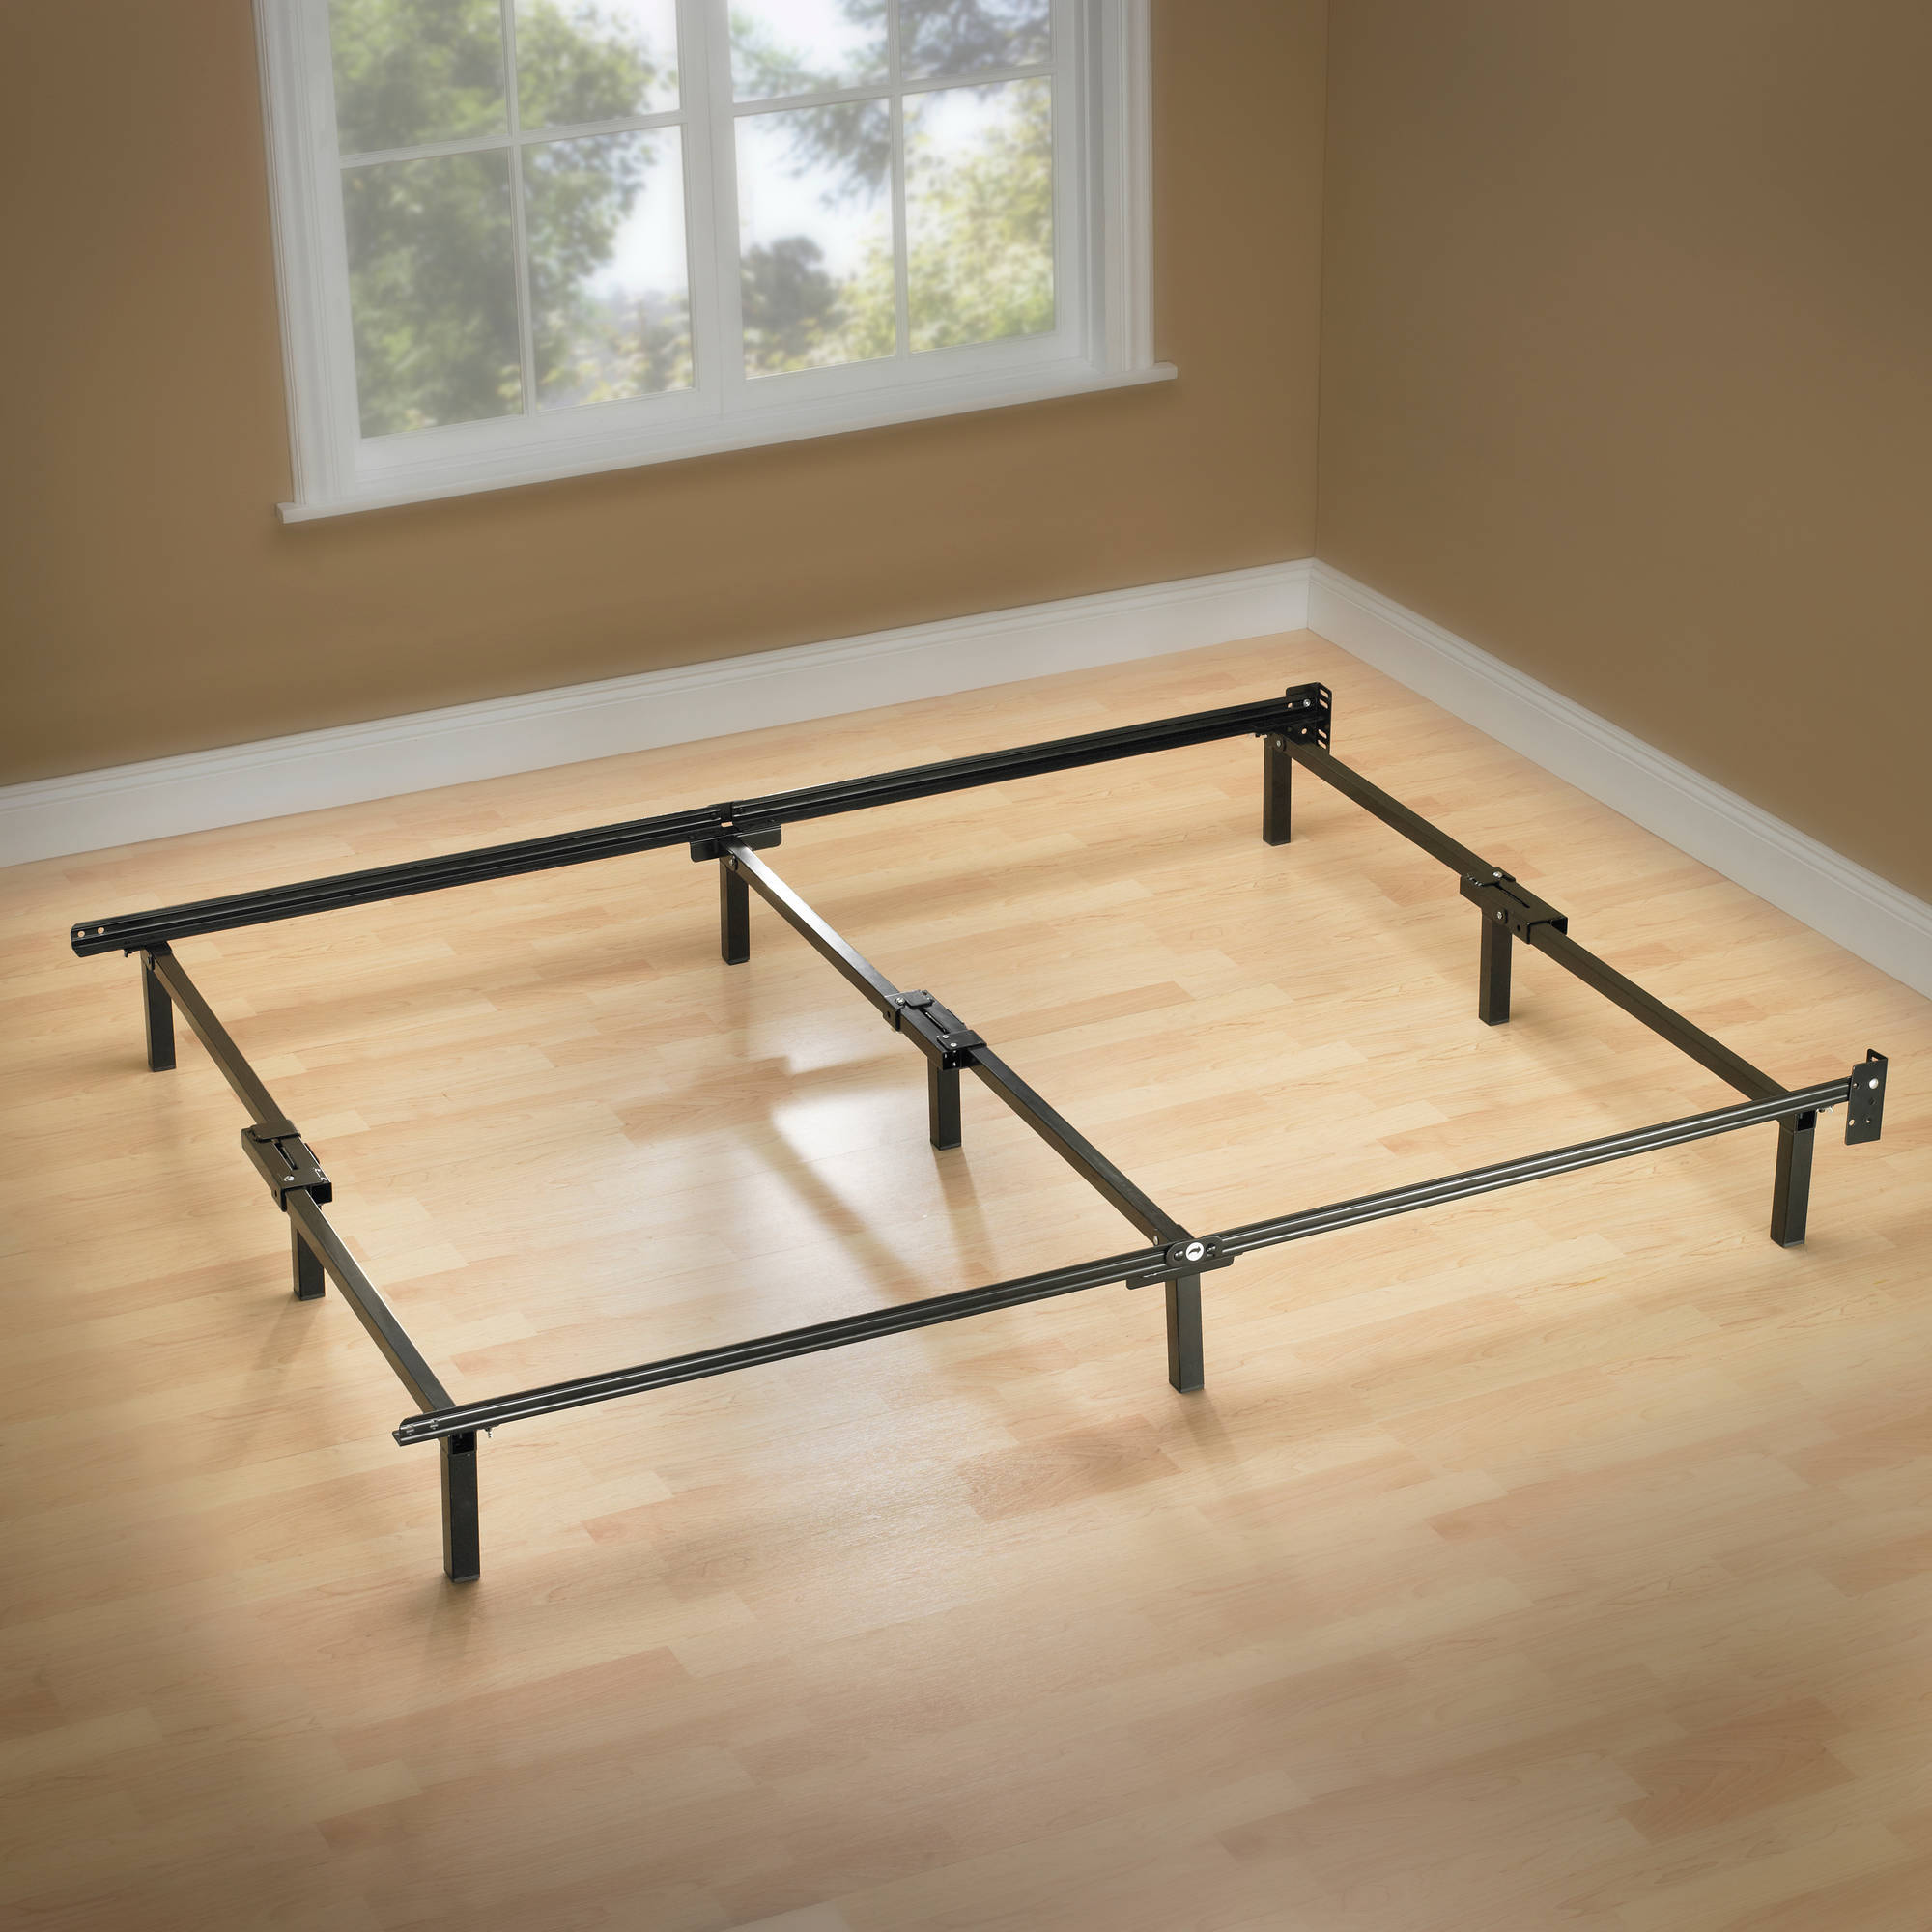 spa sensations  low profile adjustable steel bed frame easy no  - spa sensations  low profile adjustable steel bed frame easy no toolsassembly multiple sizes  walmartcom